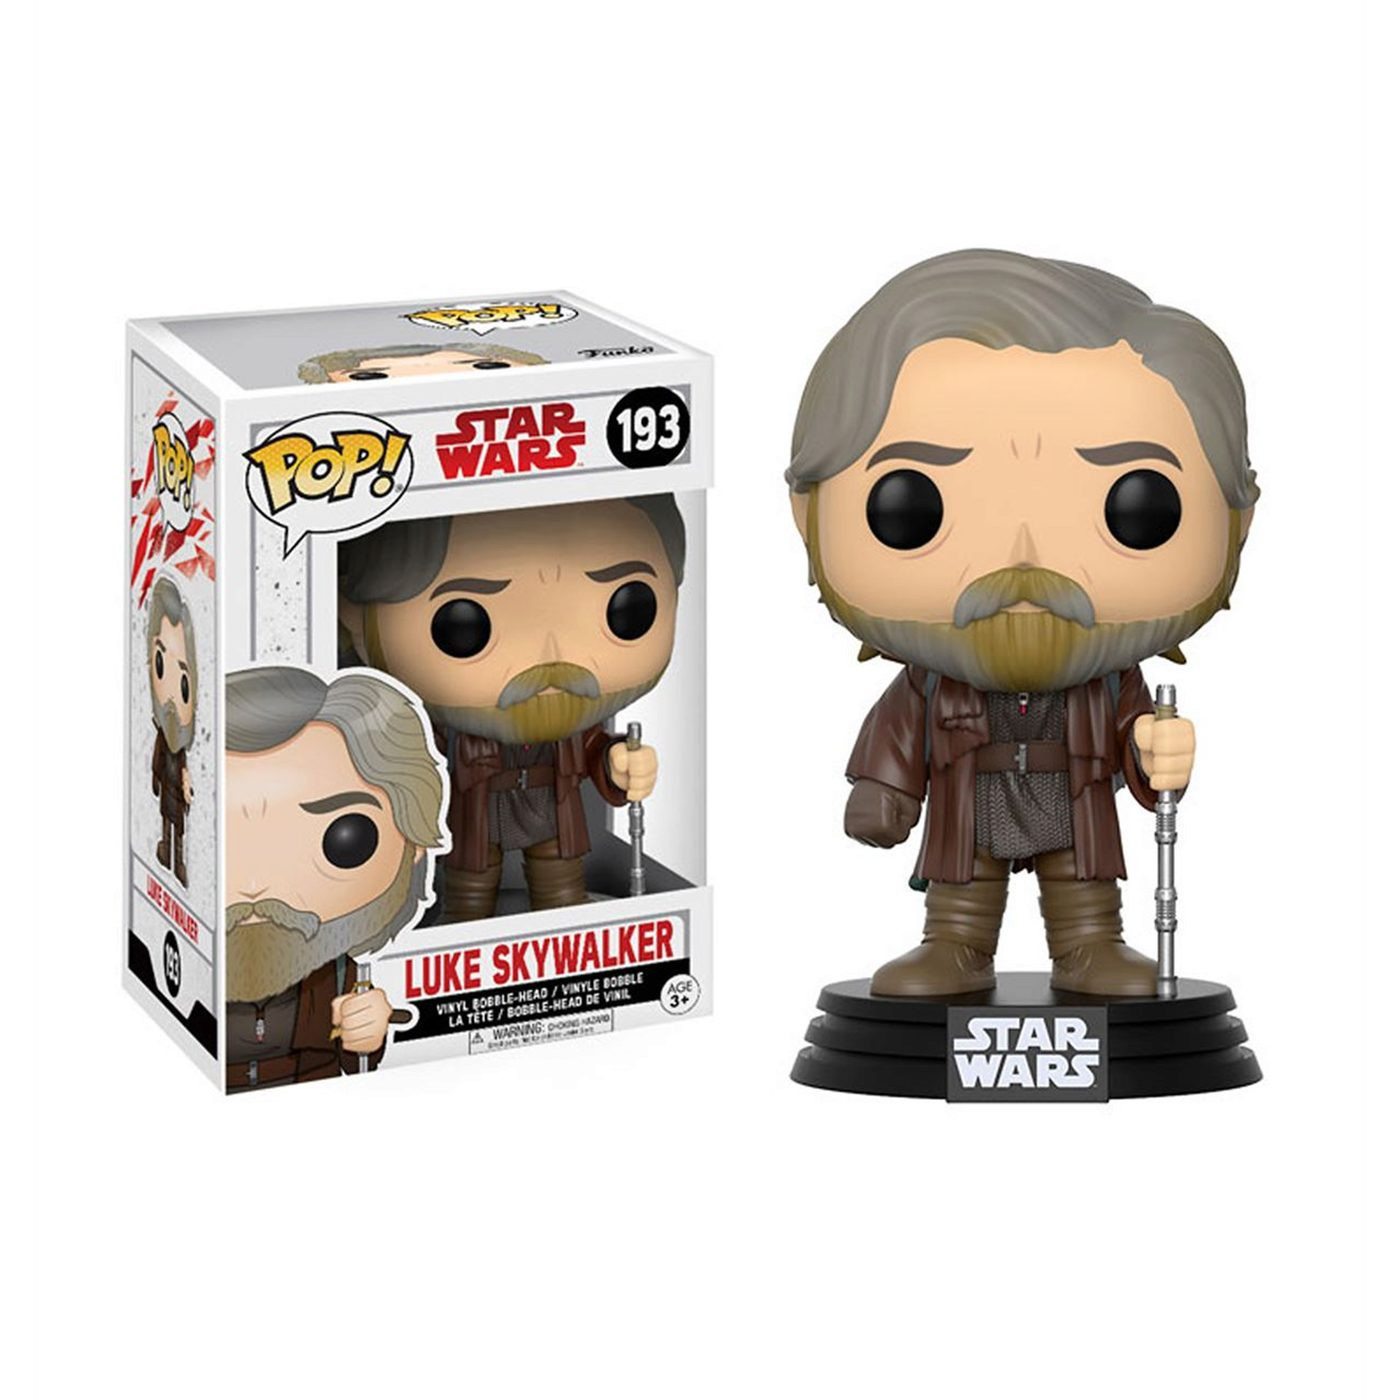 Star Wars Last Jedi Luke Skywalker Funko Pop Bobble Head